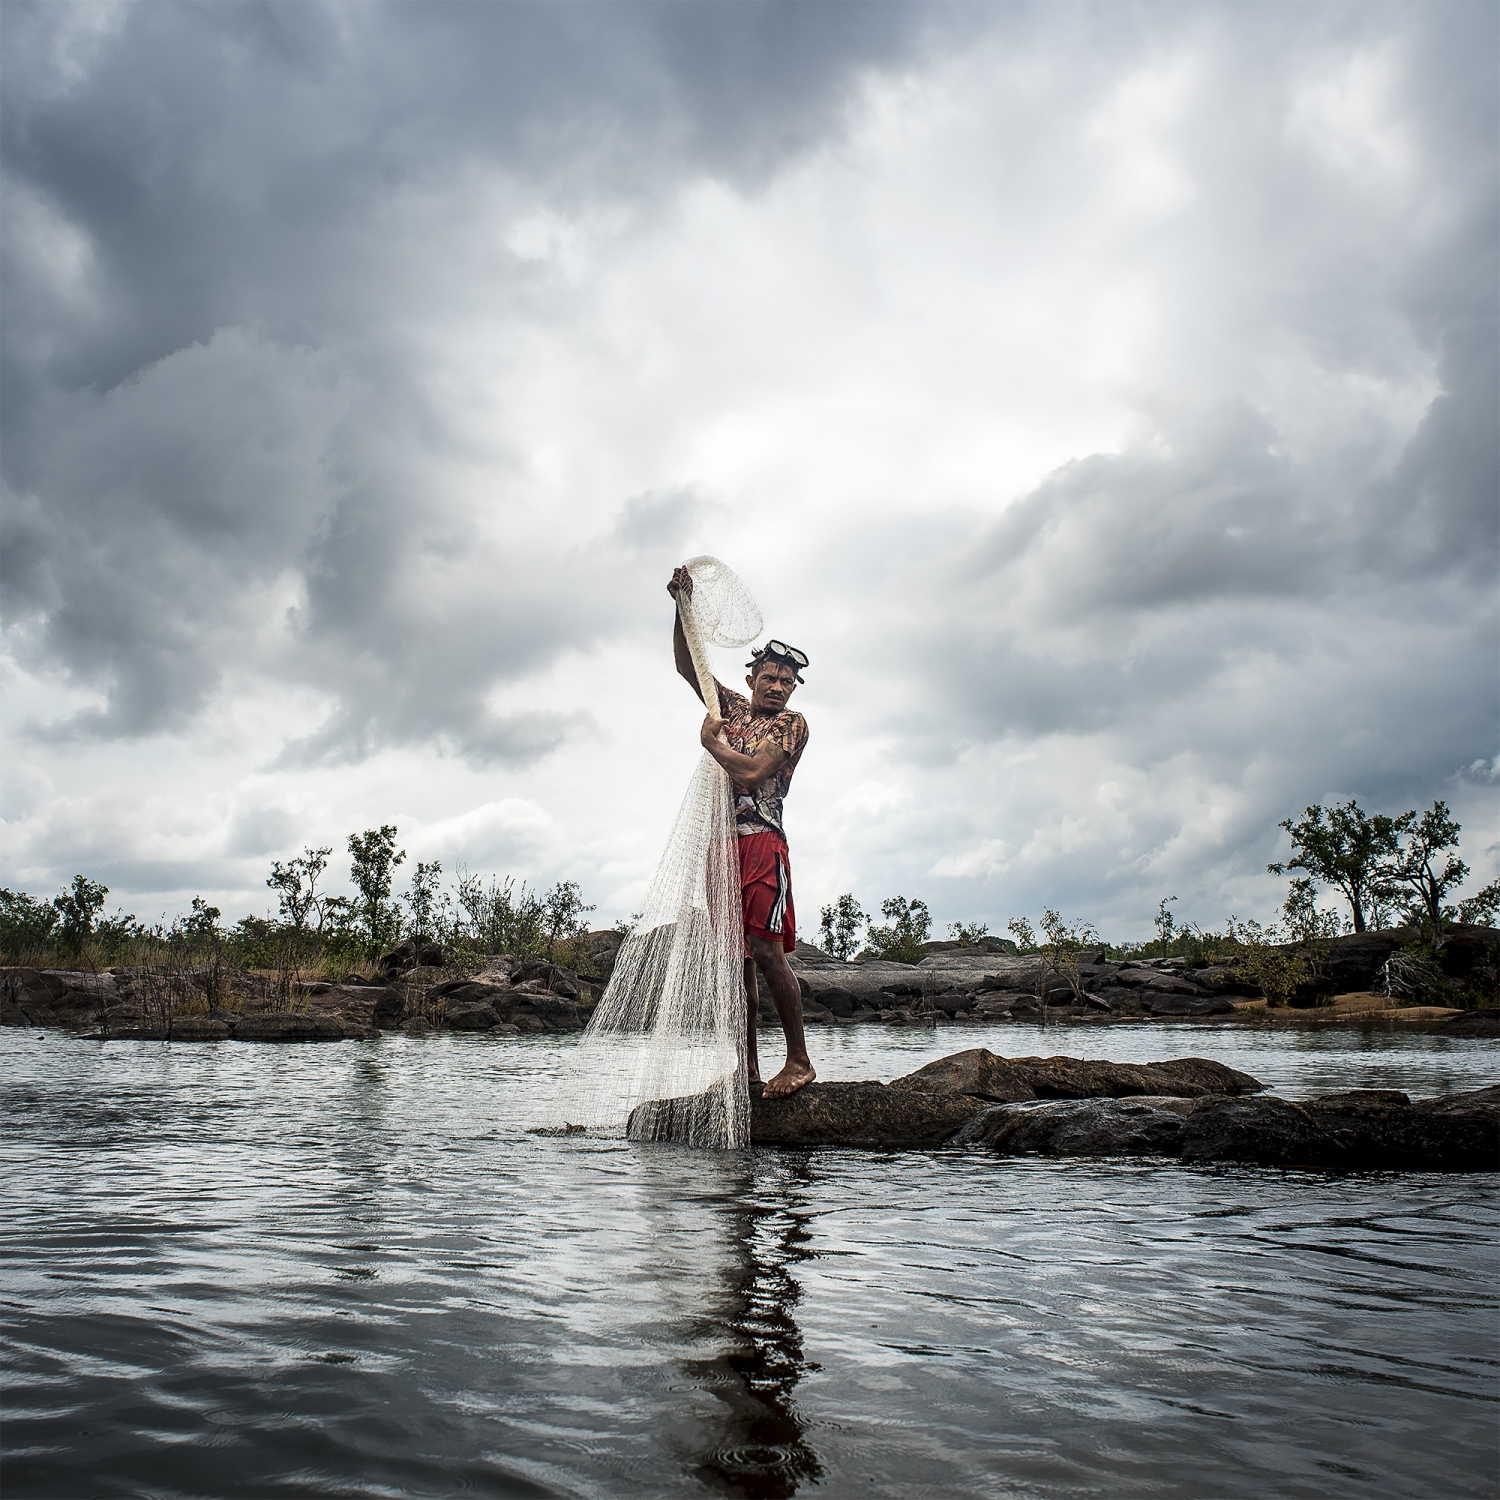 2016. Caboco Juruna from the Juruna village of Miratu in the Paquiçamba Indigenous Reserve on the Volta Grande do Xingu, fishes for Acarí fish on the Xingu River. This part of the Xingu River has had it's water flow blocked by the newly completed Belo Monte Dam, severly damaging the fishing livelihoods of the people. The Juruna are now worried that the construction of the upstream Belo Sun Gold Mine, which will be the largest open pit gold mine in Brazil, will further damage their river and way of life. Aaron Vincent Elkaim